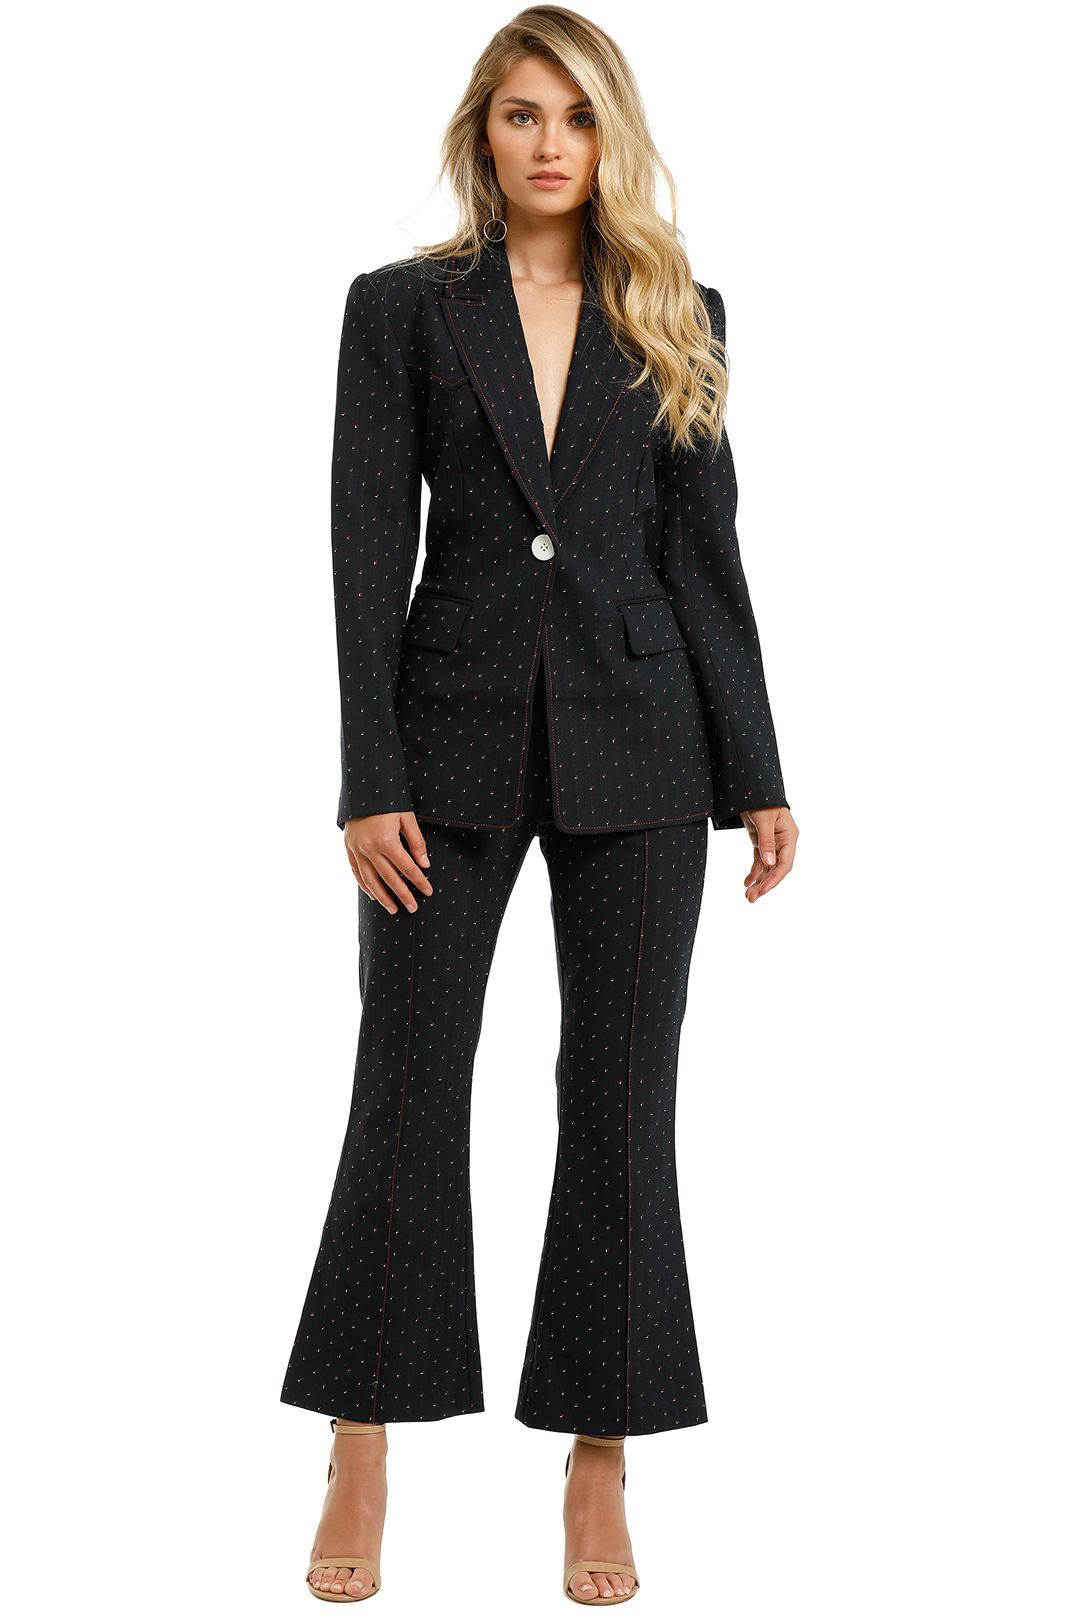 Lover-Jagger-Tailored-Jacket-Navy-Front